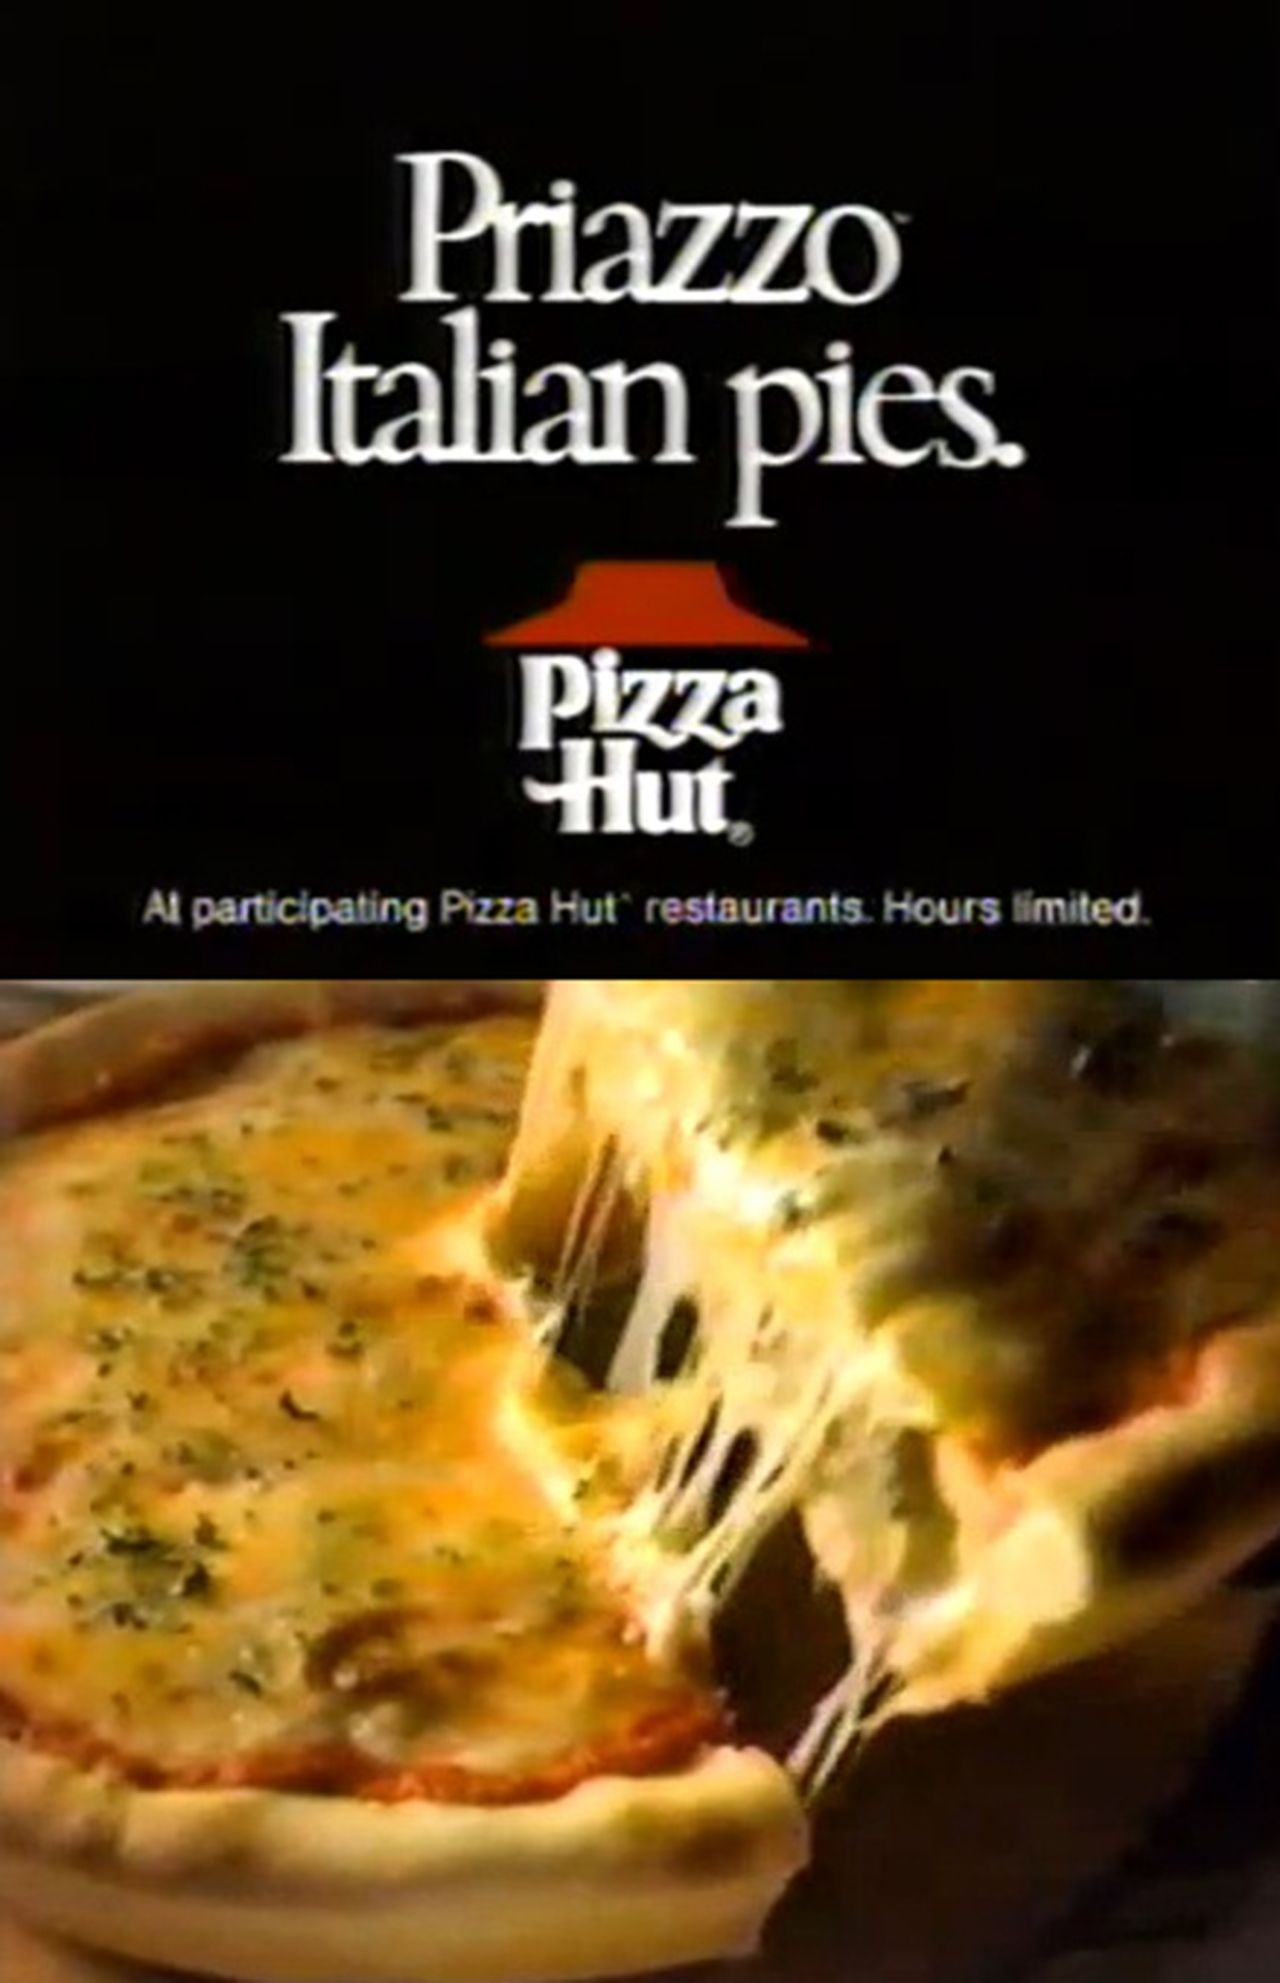 Pizza Hut Priazzo The BEST Thing They Ever Had Why Did They Stop - Pizza hut table rock lake